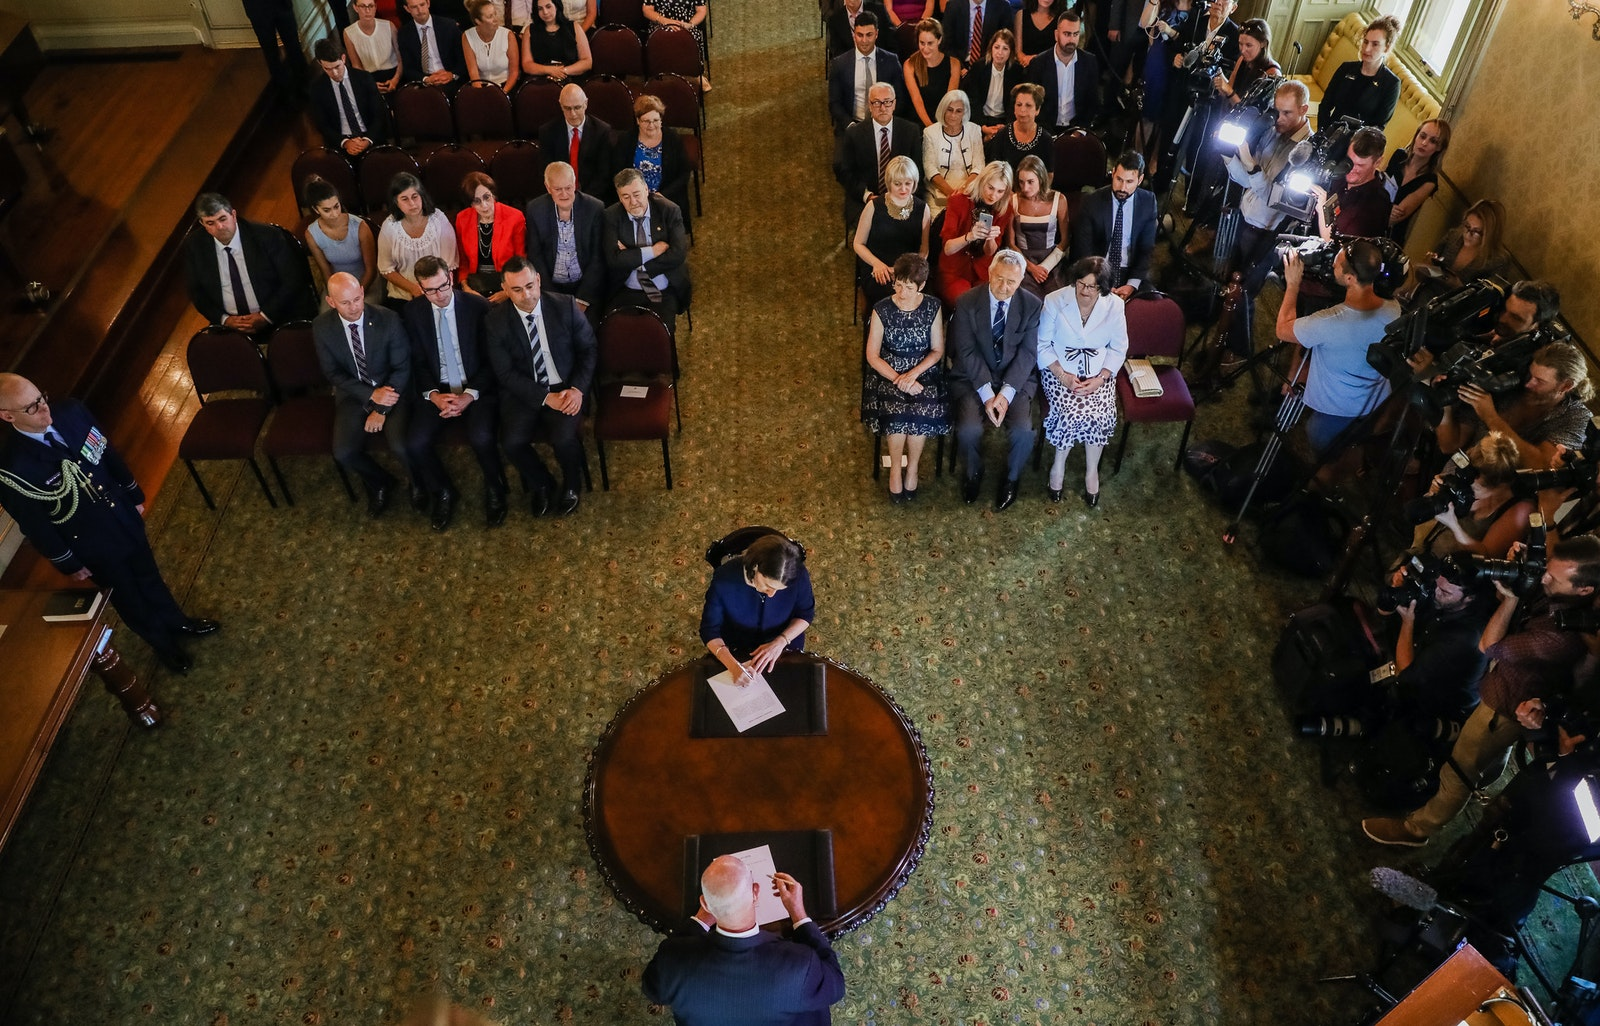 Swearing-in Ceremony - Swearing-in Ceremony for Premier and Deputy Premier at NSW Government House, Sydney. Picture Salty Dingo